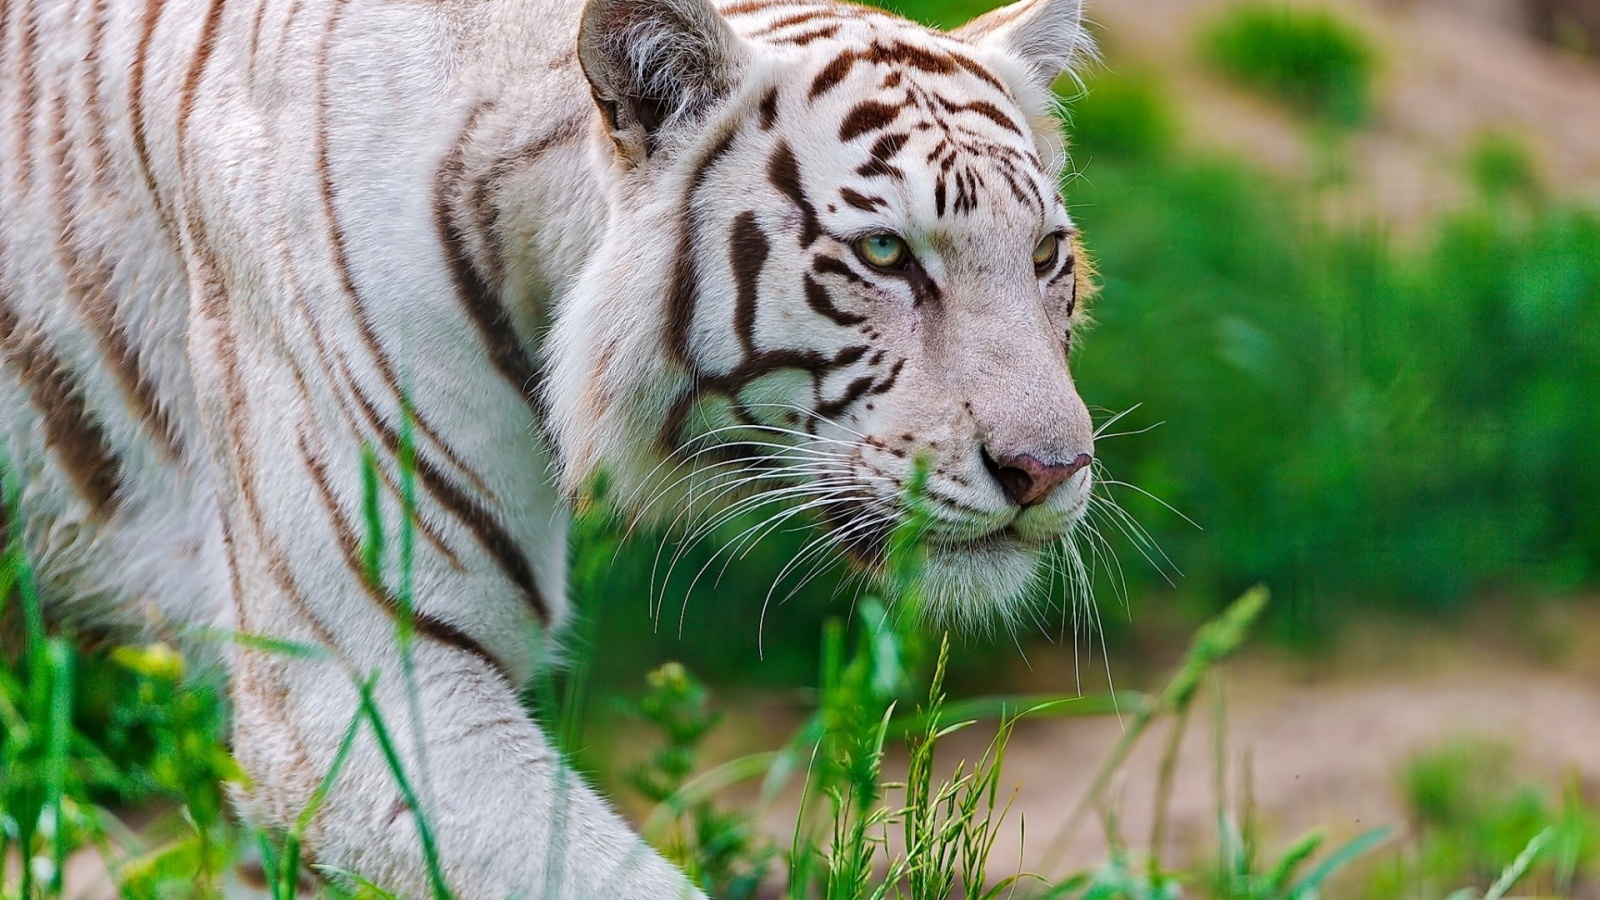 White Tigress Walking In The Grass Wallpapers - 1600x900 - 581434